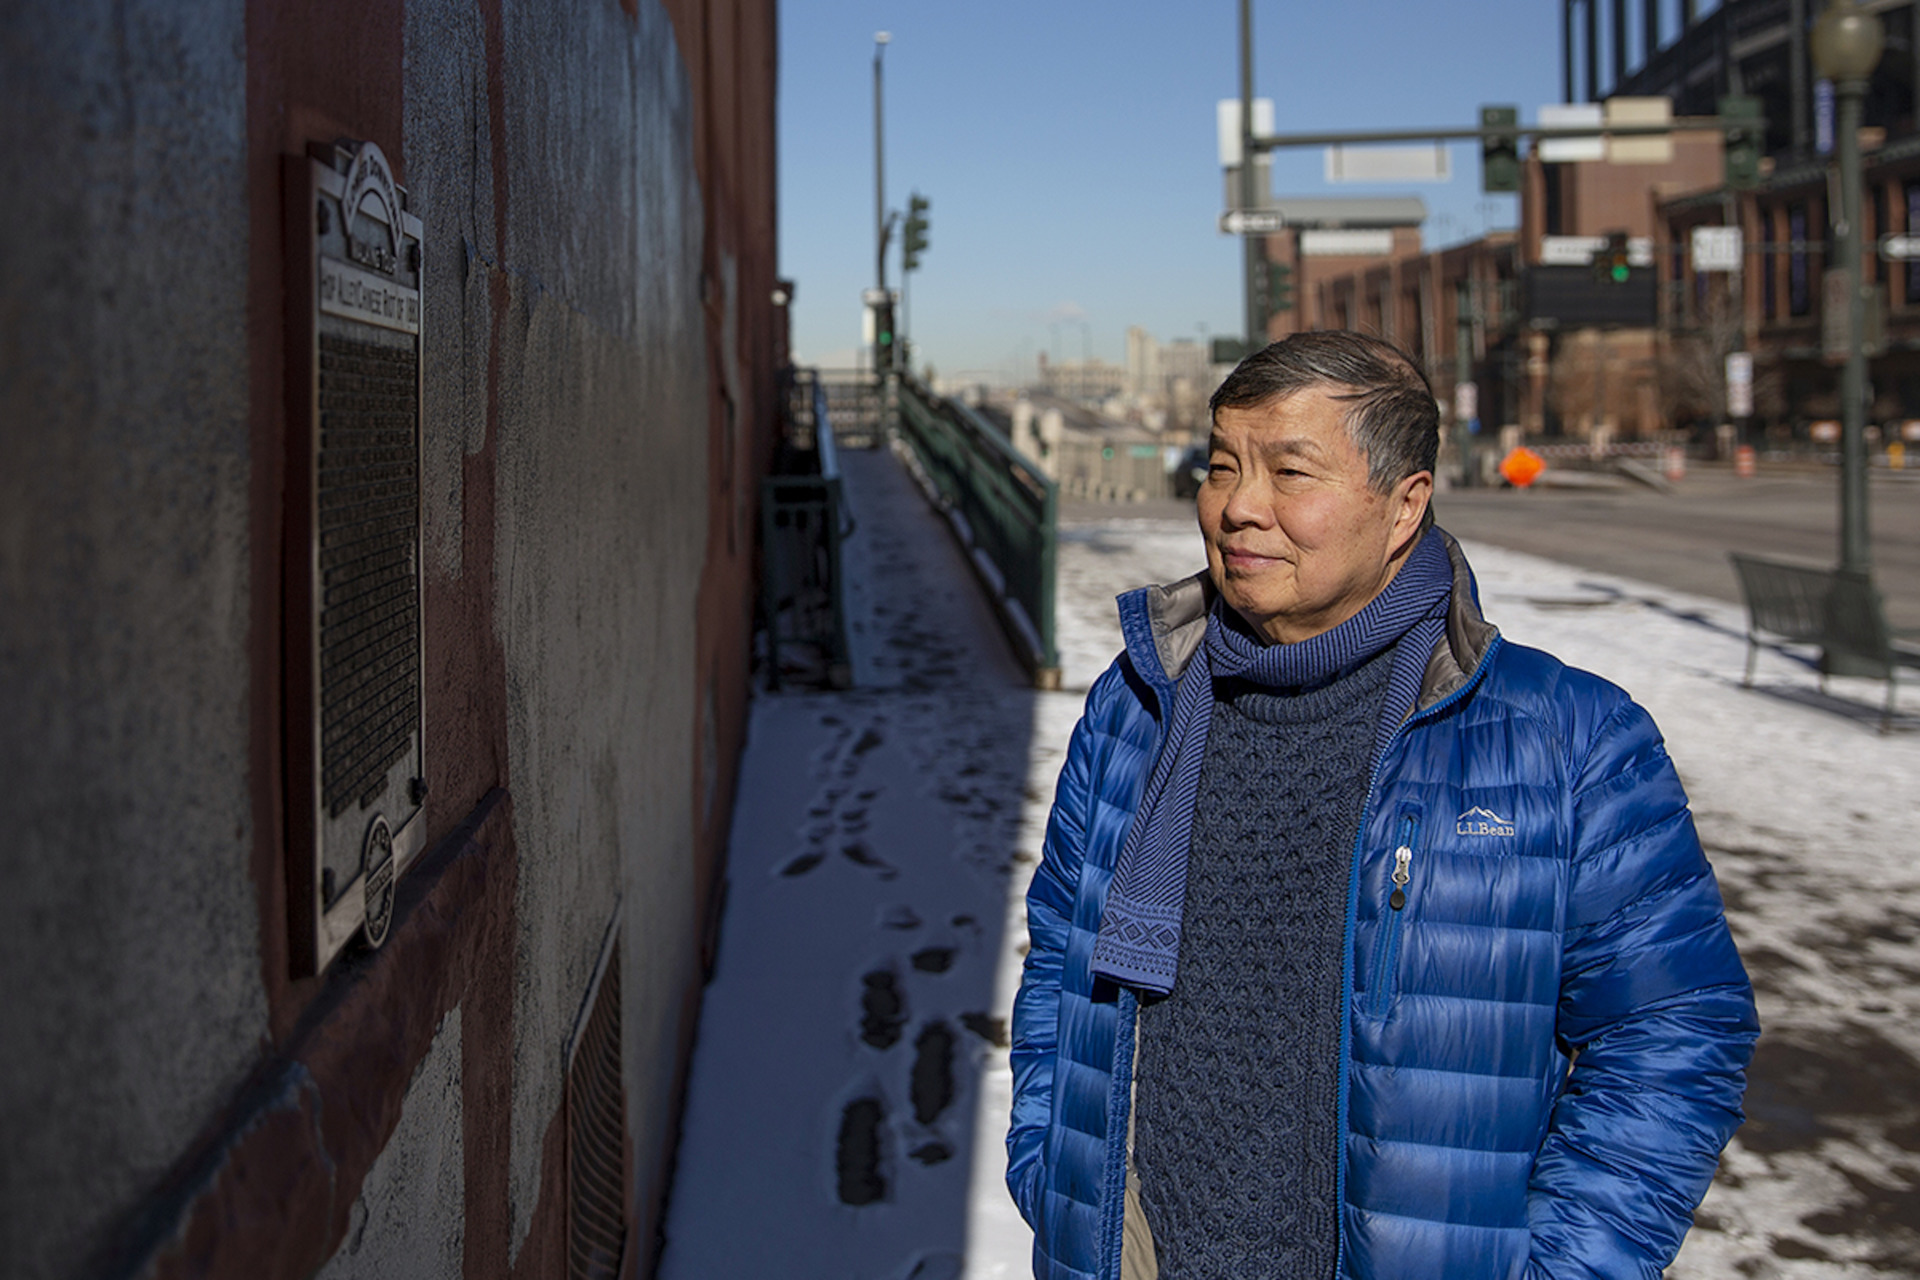 Reimagining Denver's Chinatown amidst lost history and uptick in anti-Asian American attacks